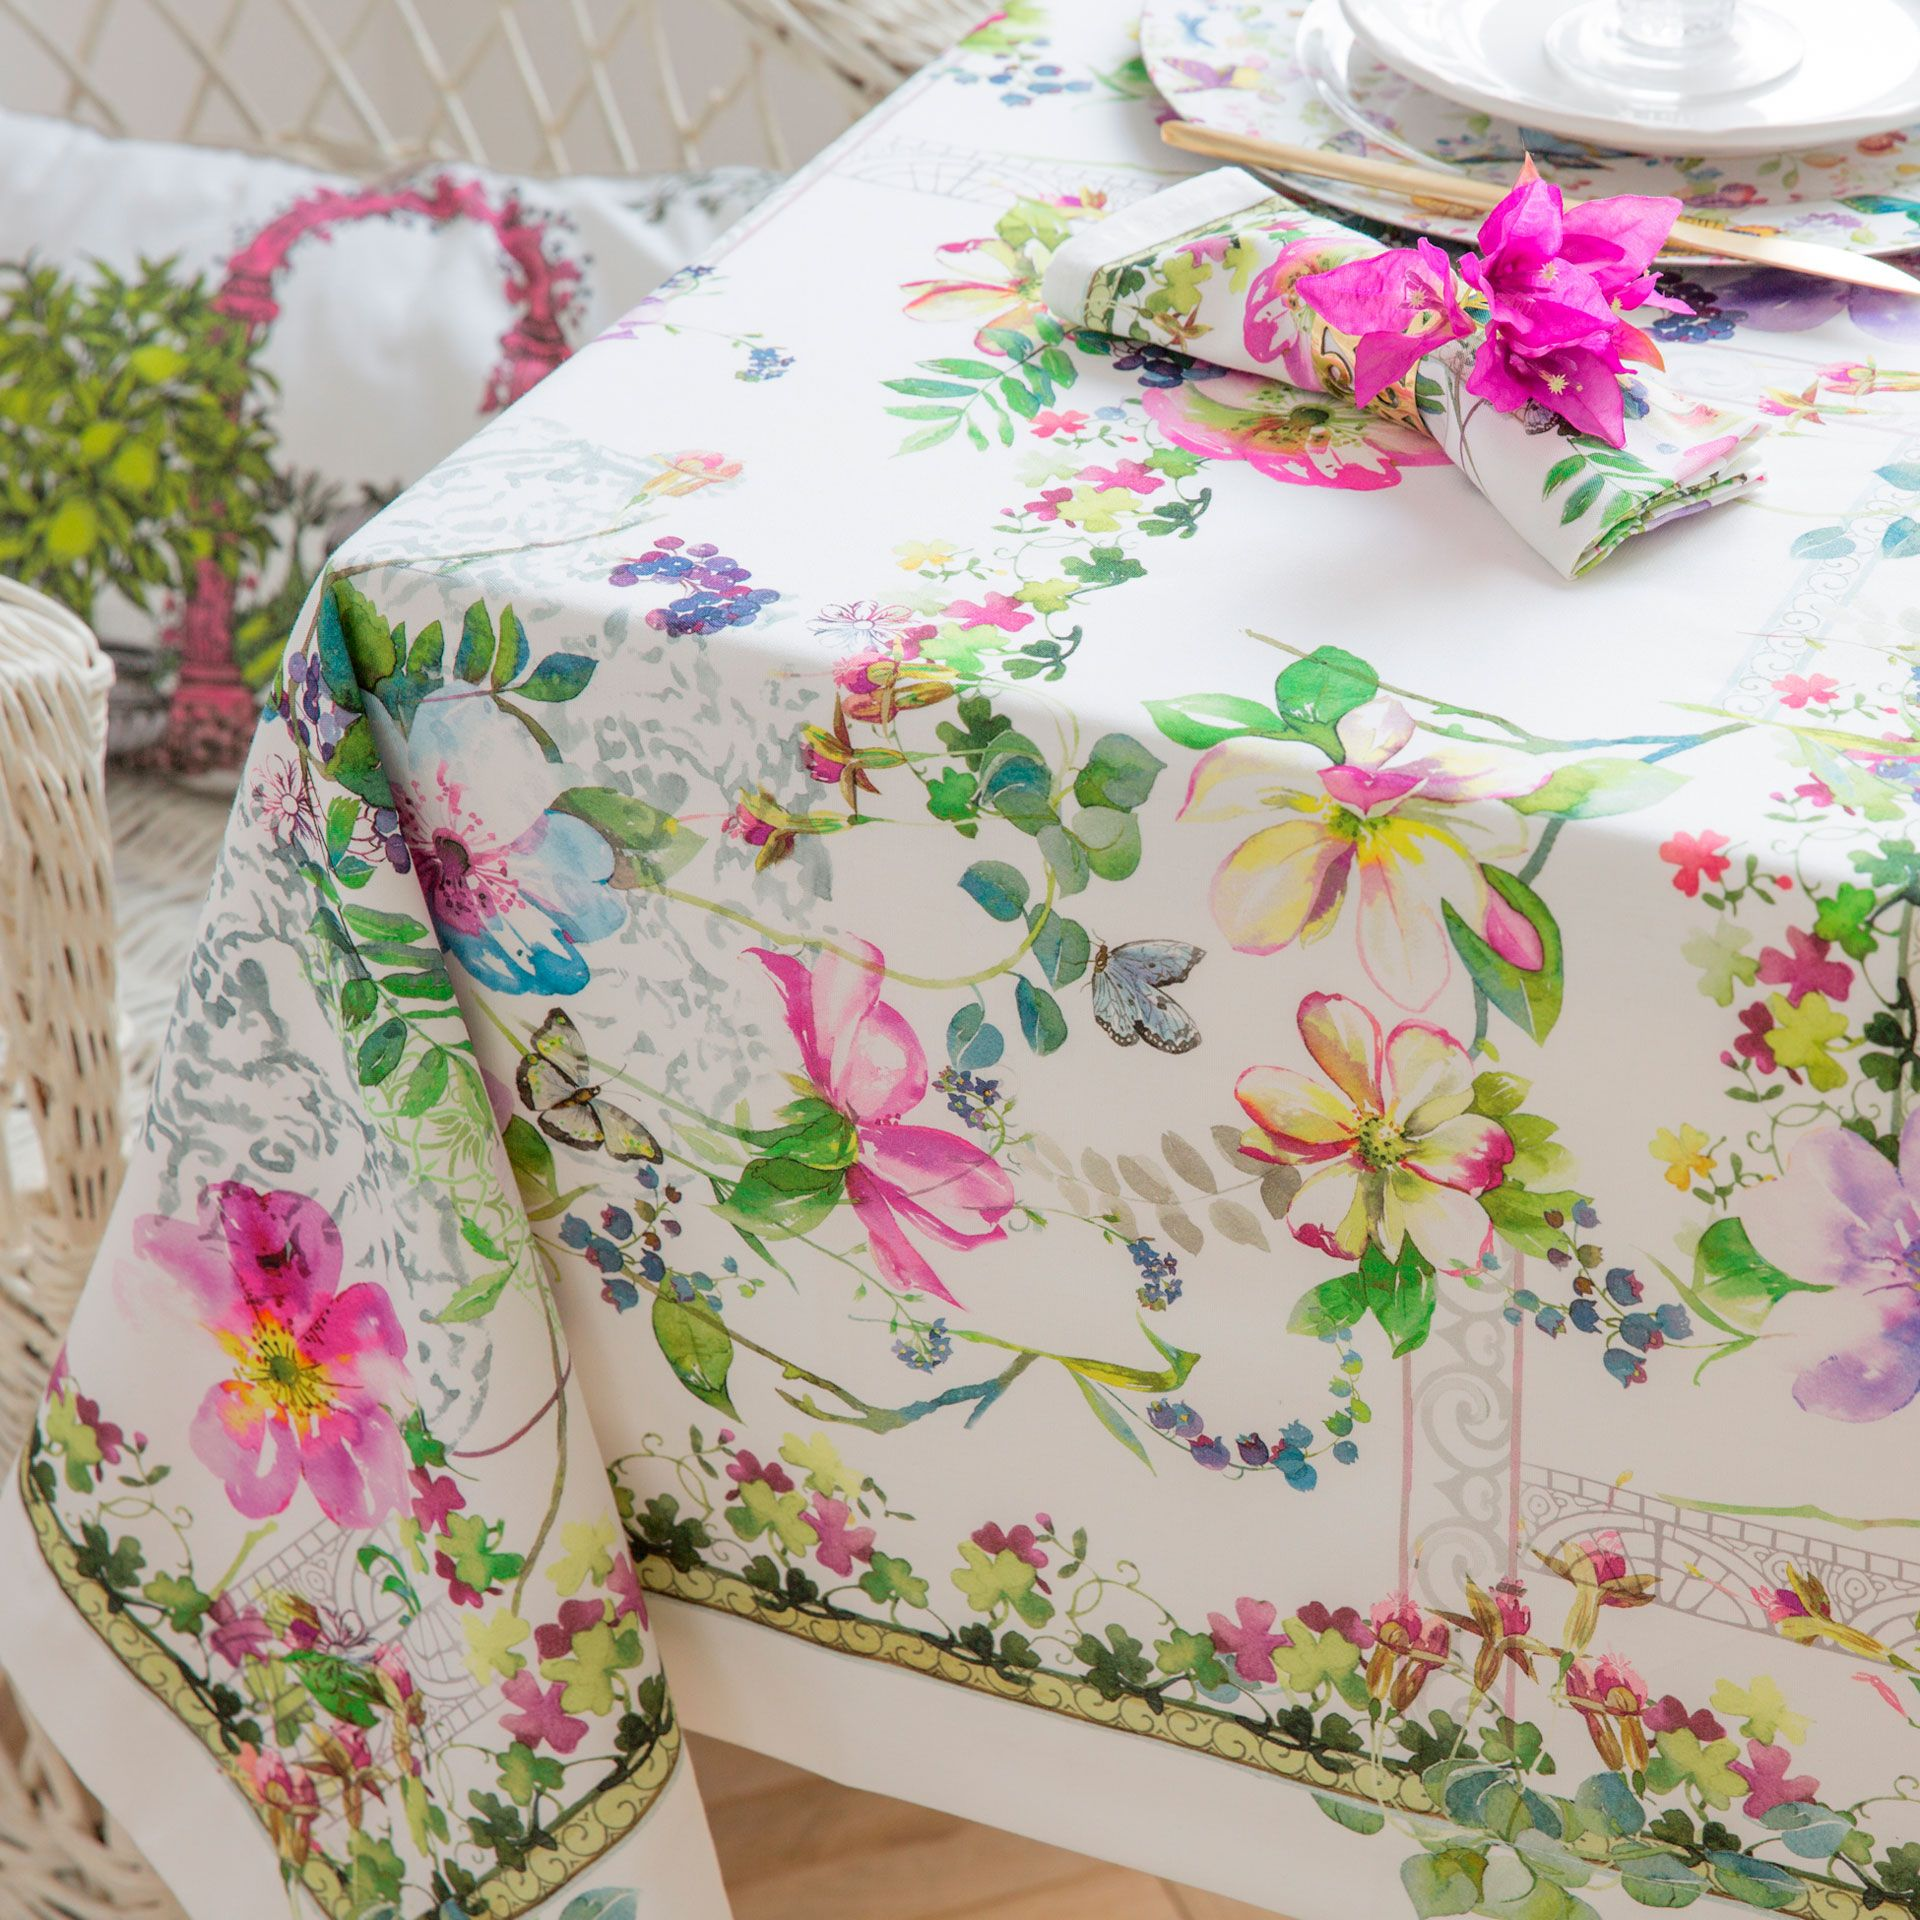 SPRING PRINT TABLECLOTH AND NAPKIN   Tablecloths U0026 Napkins   Tableware |  Zara Home United